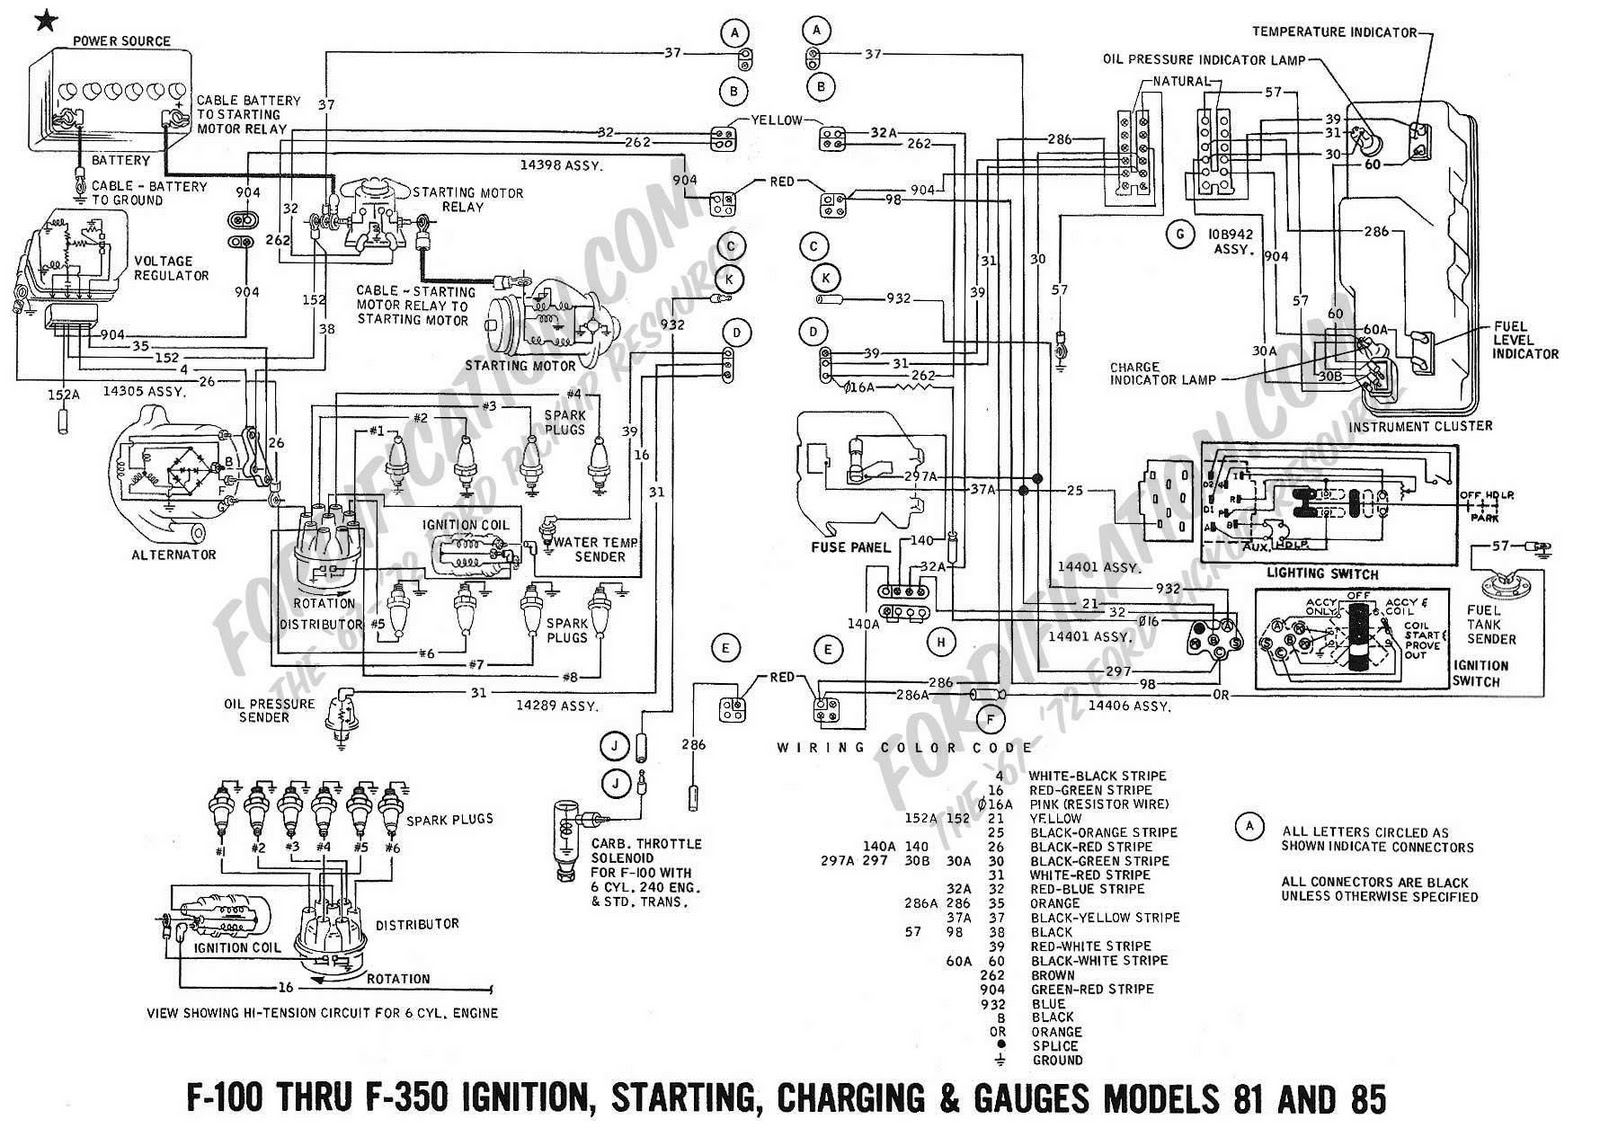 1973 Chevy Nova Fuse Box Diagram Panel Download Wiring Diagrams 1969 Ford F100 F350 Ignition Starting Charging And 2006